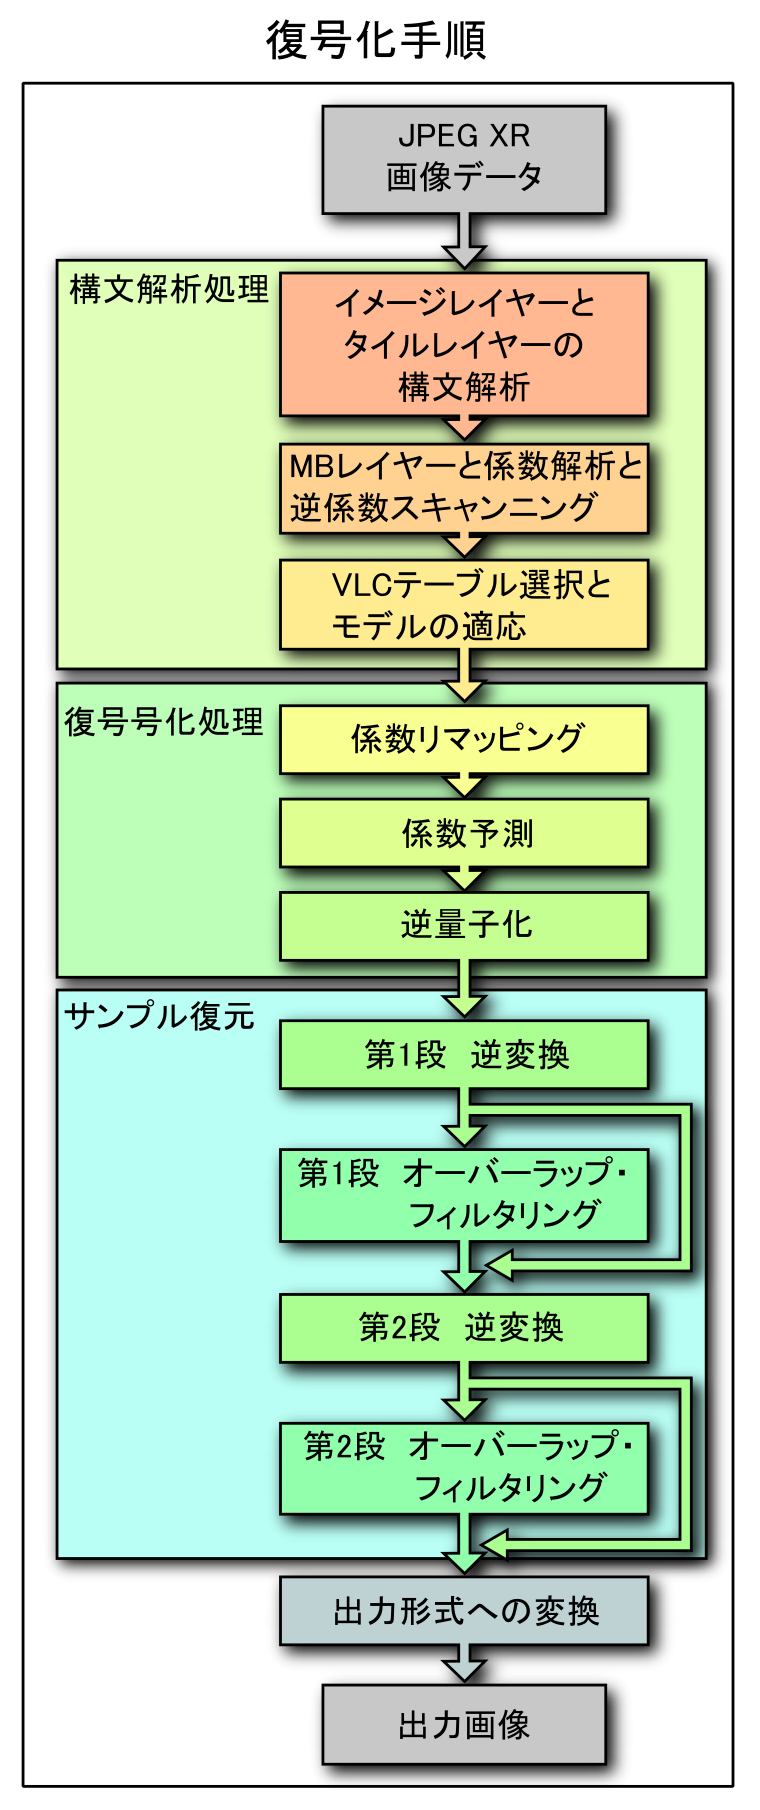 File:JPEG XR image decoding - block diagram (J).PNG